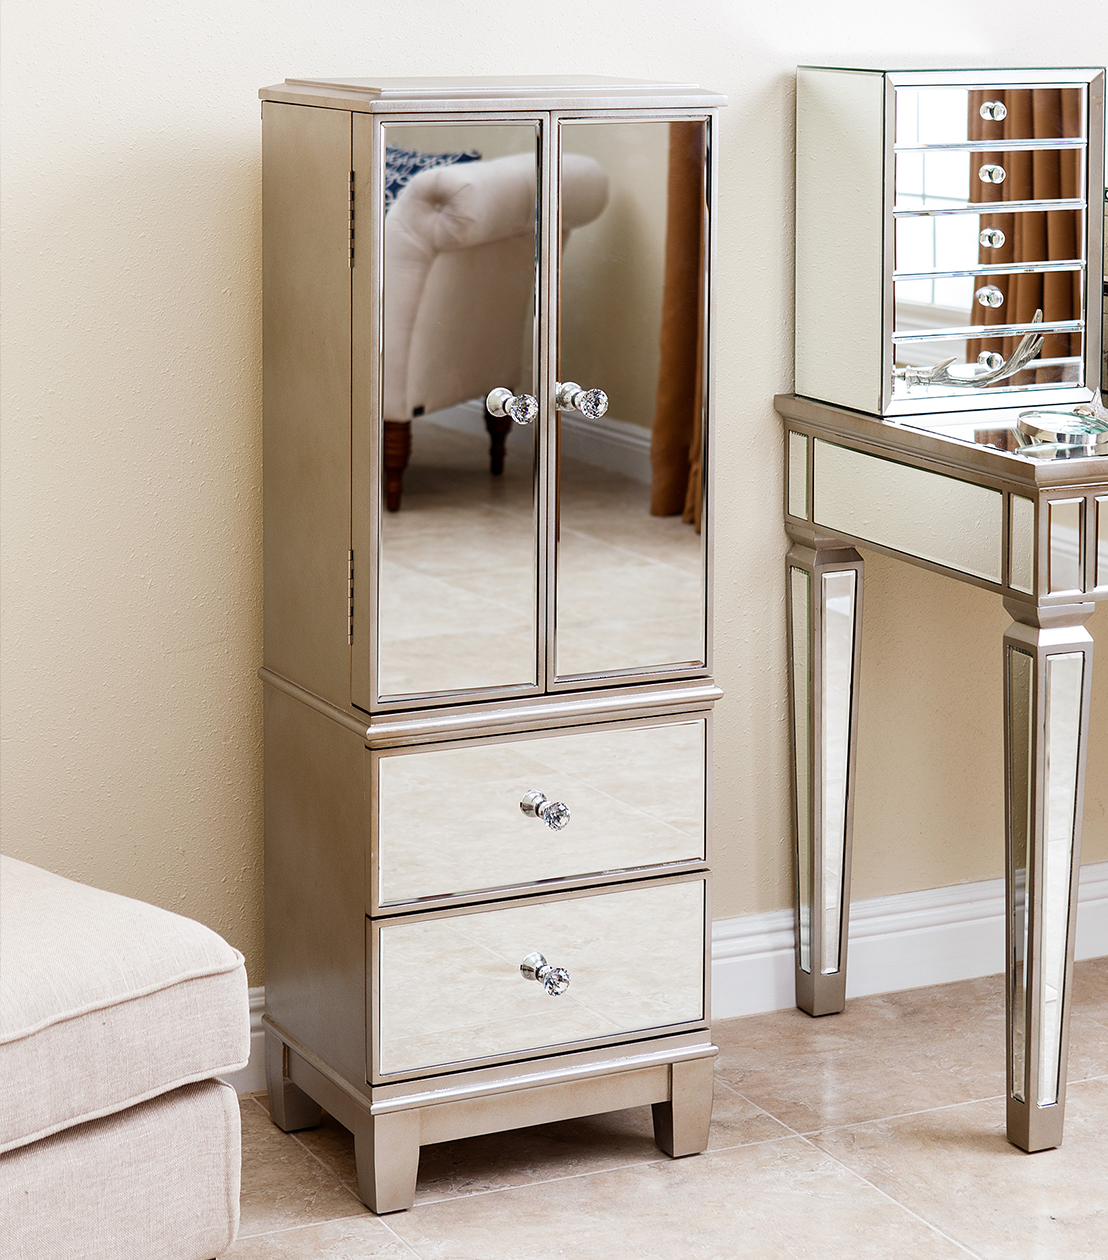 Image of: Amazing Mirrored Jewelry Armoire